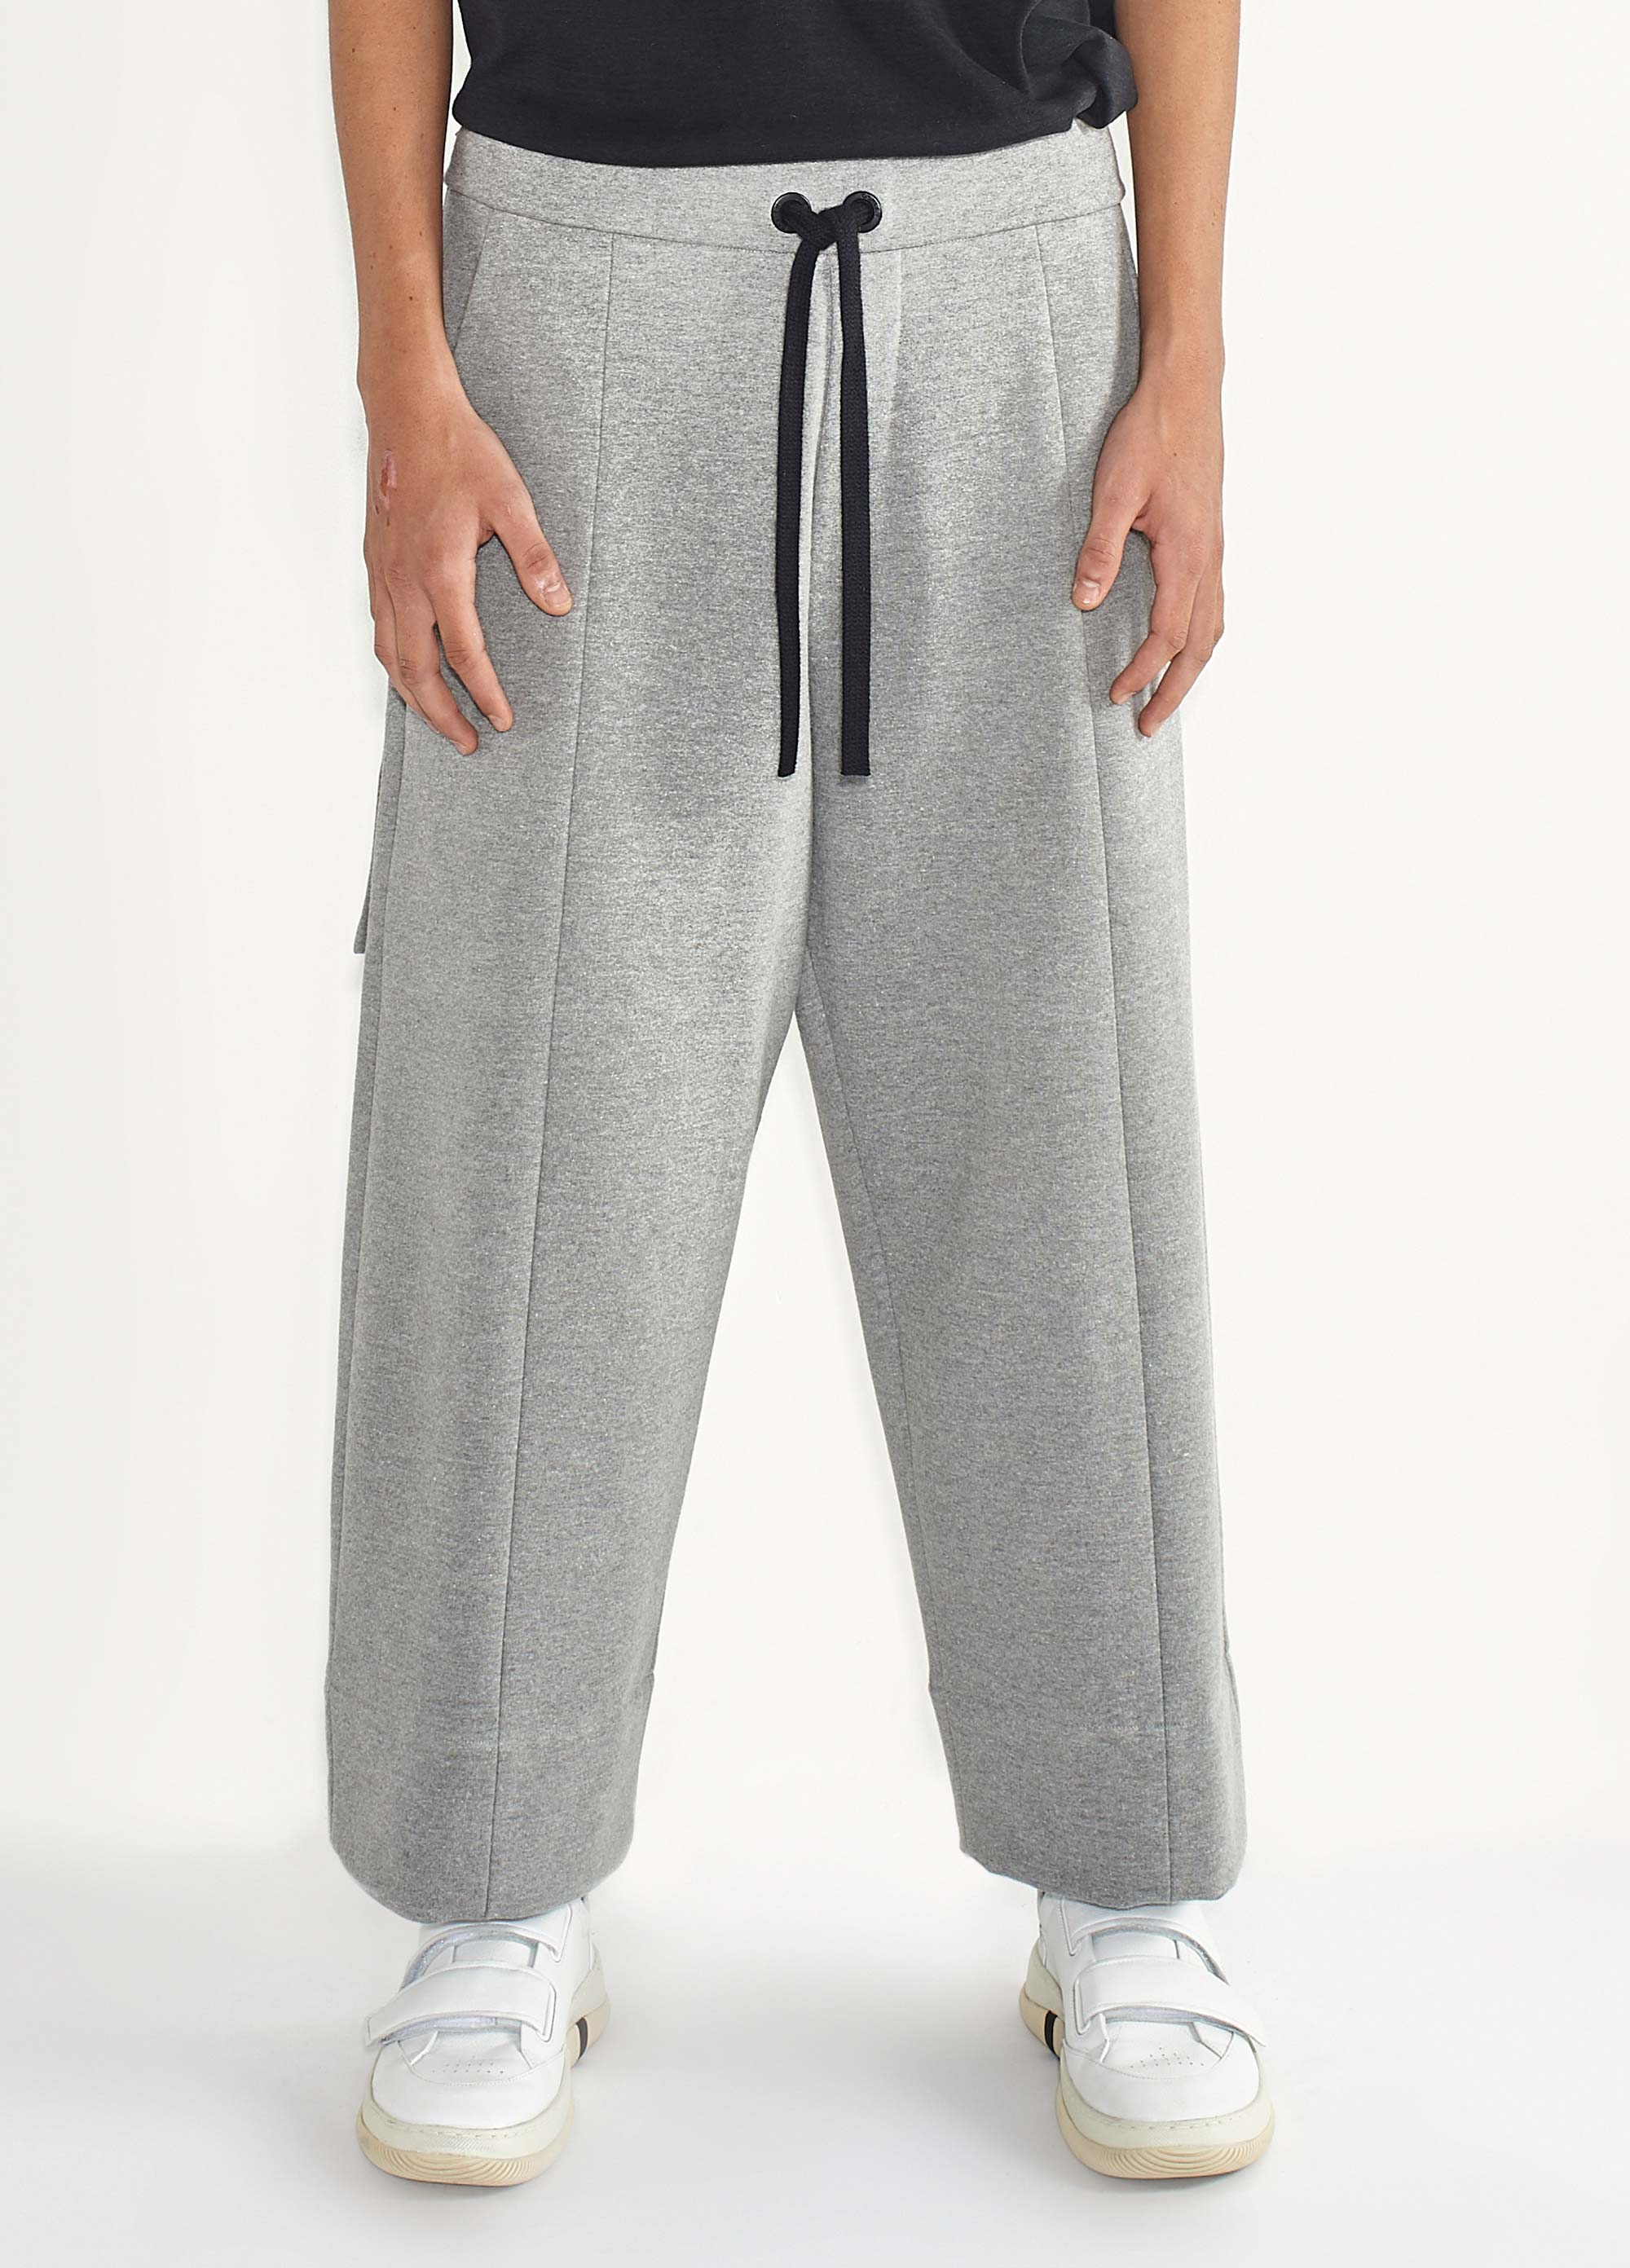 MENS HYBRID SWEATPANTS